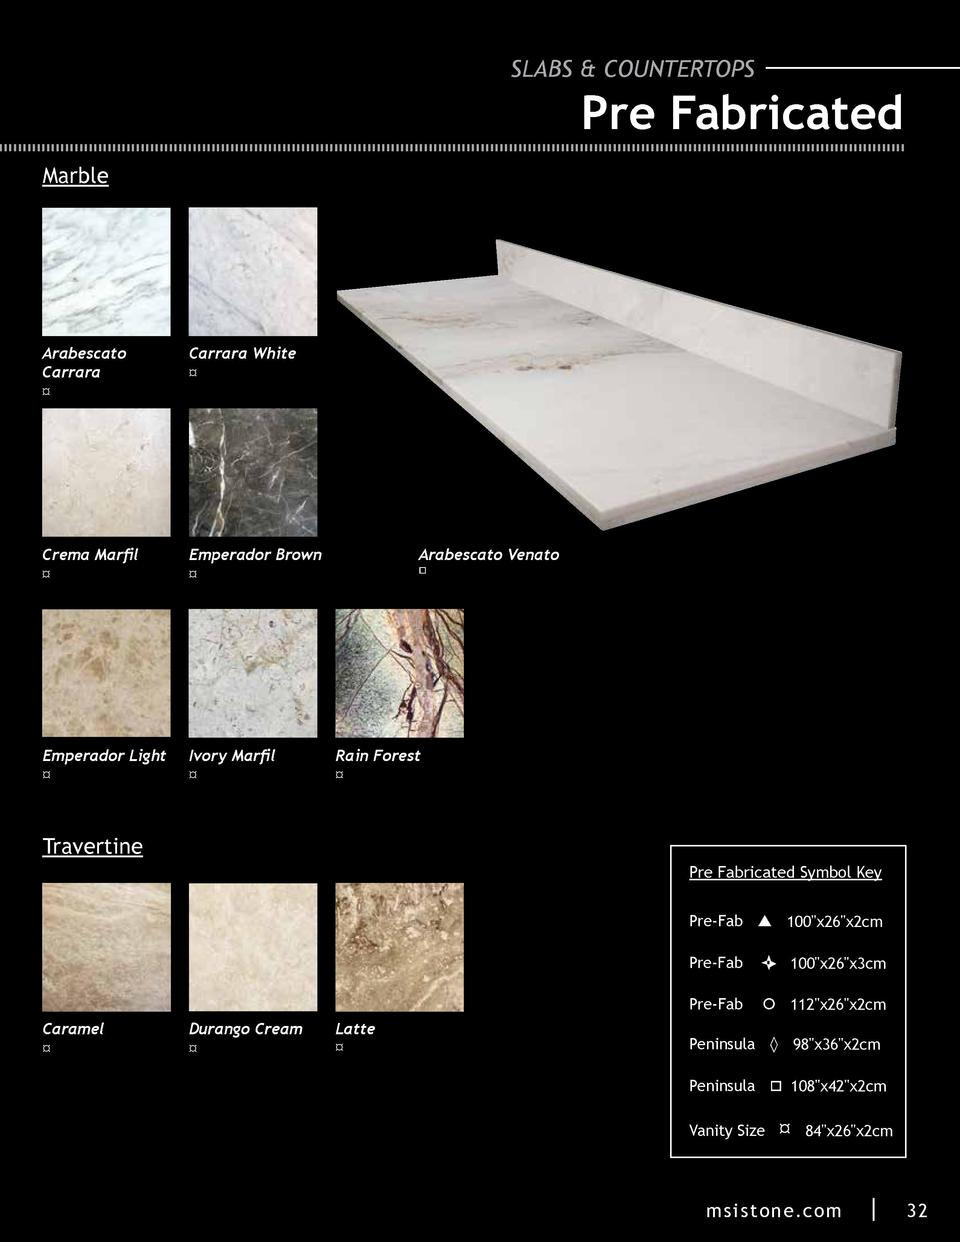 SLABS   COUNTERTOPS  Pre Fabricated Marble  Arabescato Carrara     Carrara White     Crema Marfil     Emperador Brown     ...